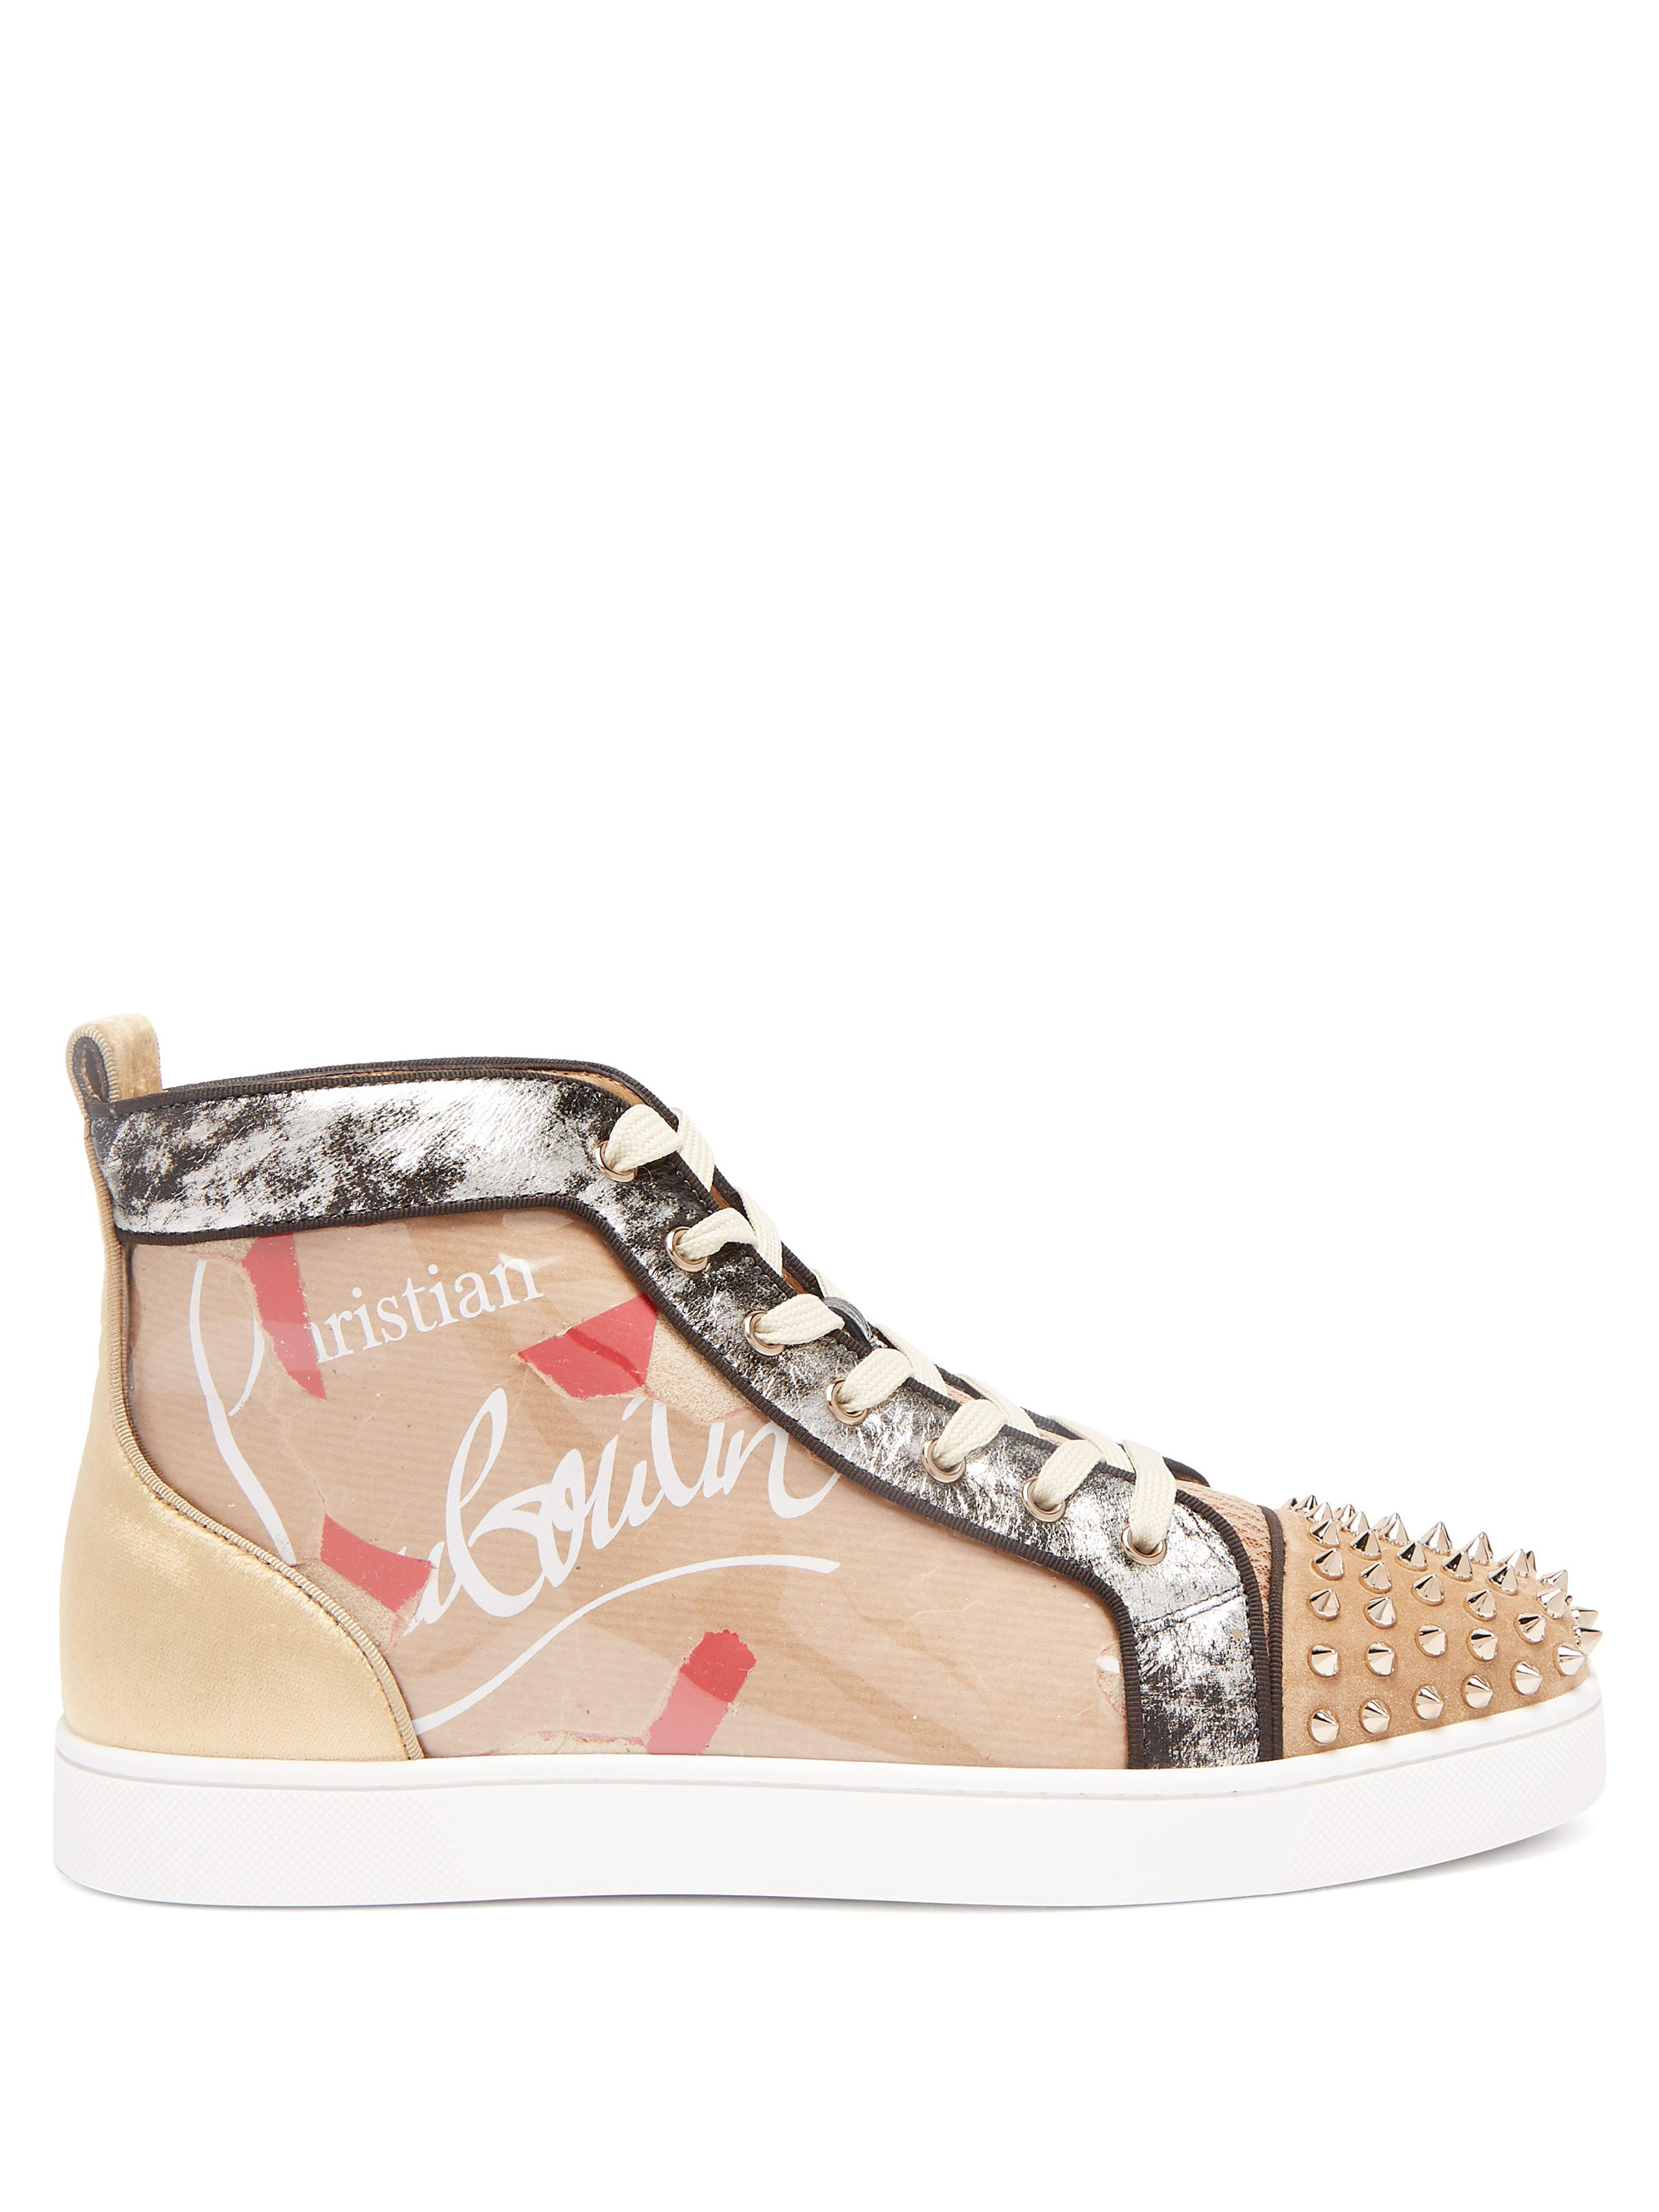 5be79f2a1d3 Christian Louboutin Louis Spike Embellished Kraft High Top Trainers ...